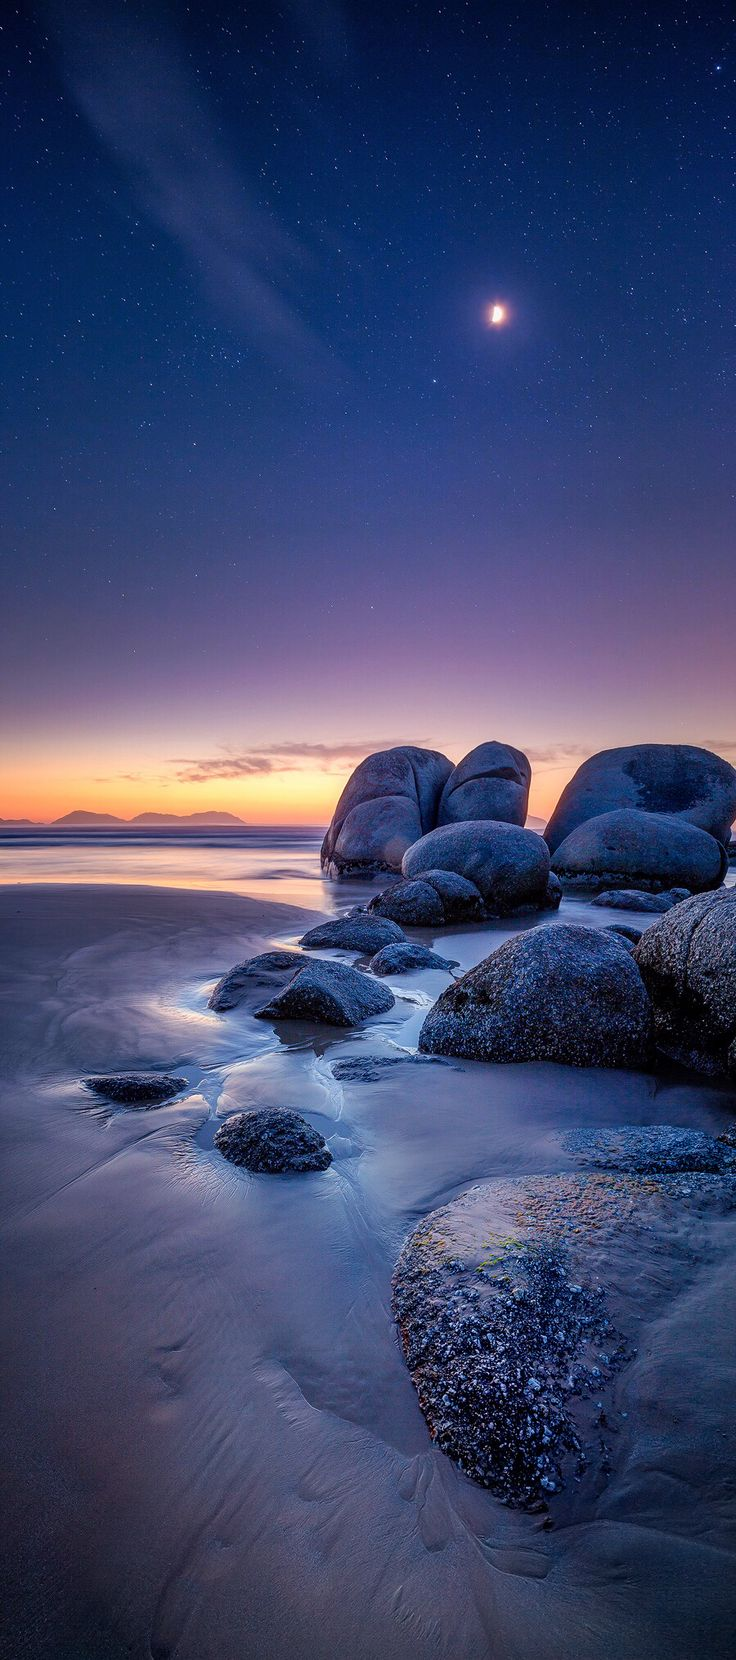 Moonlight, Wilsons Promontory National Park, Victoria, Australia | by Sam Assadi on 500px